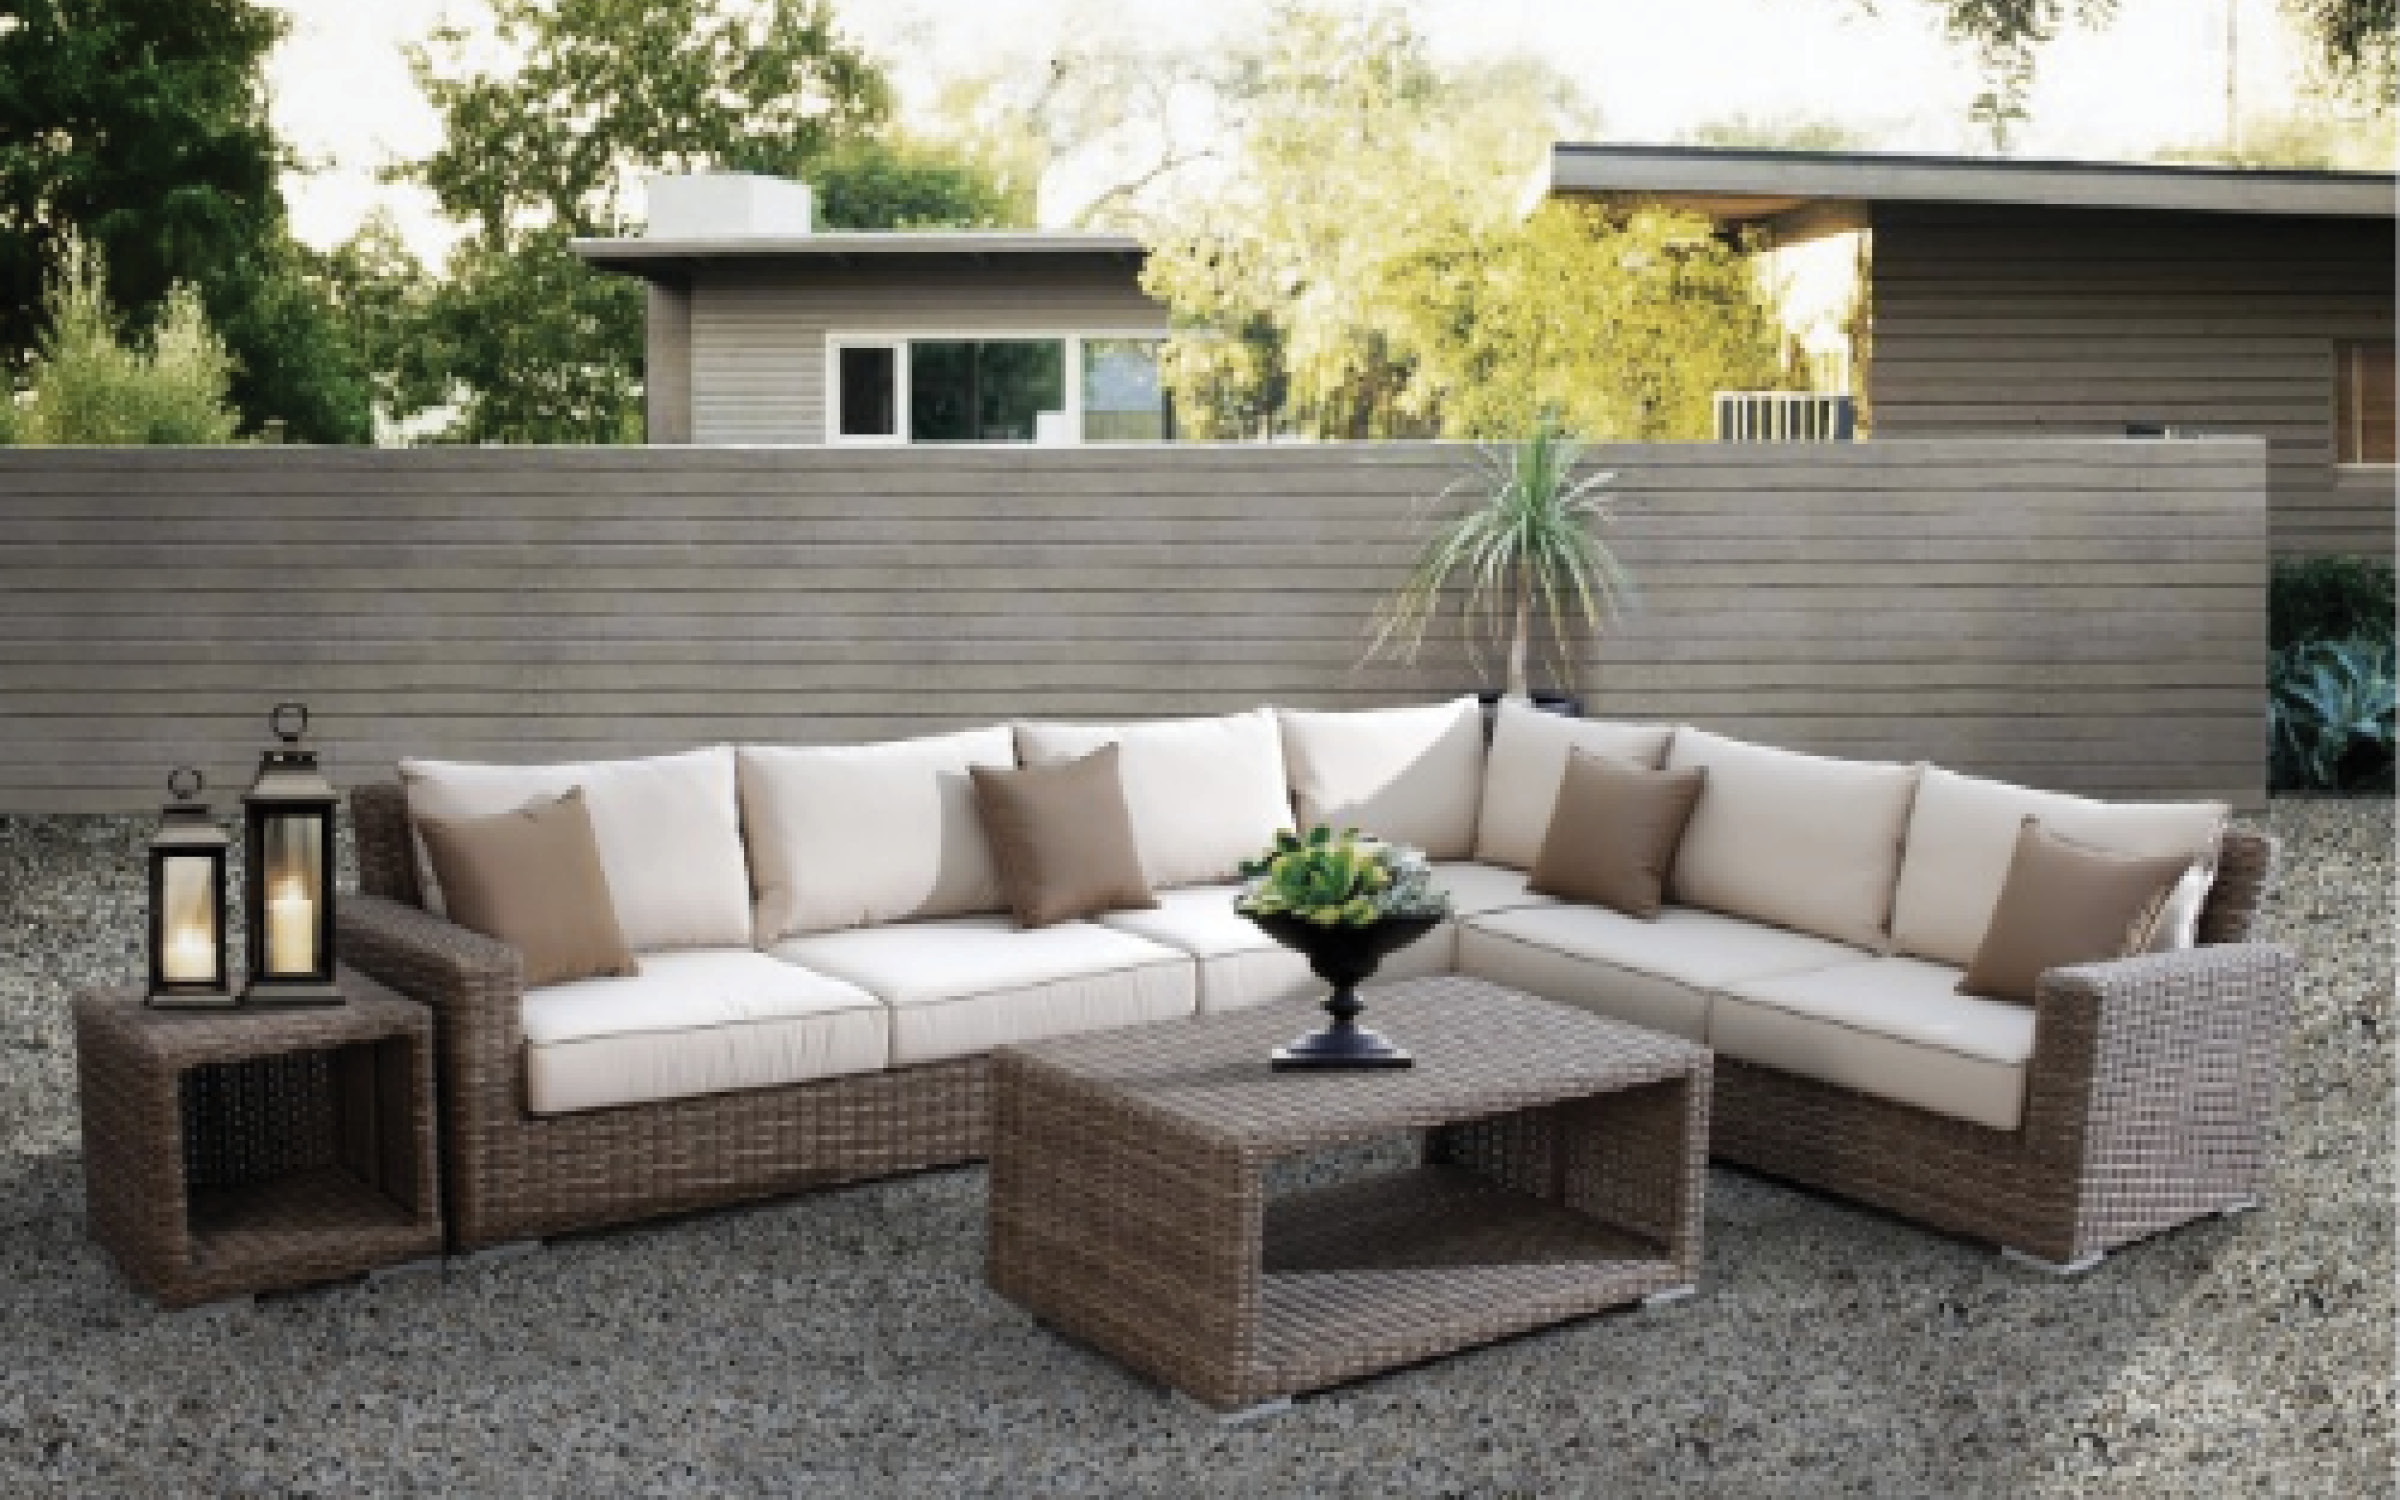 Outdoor Living Room Furniture | iFurnish, Frisco, CO